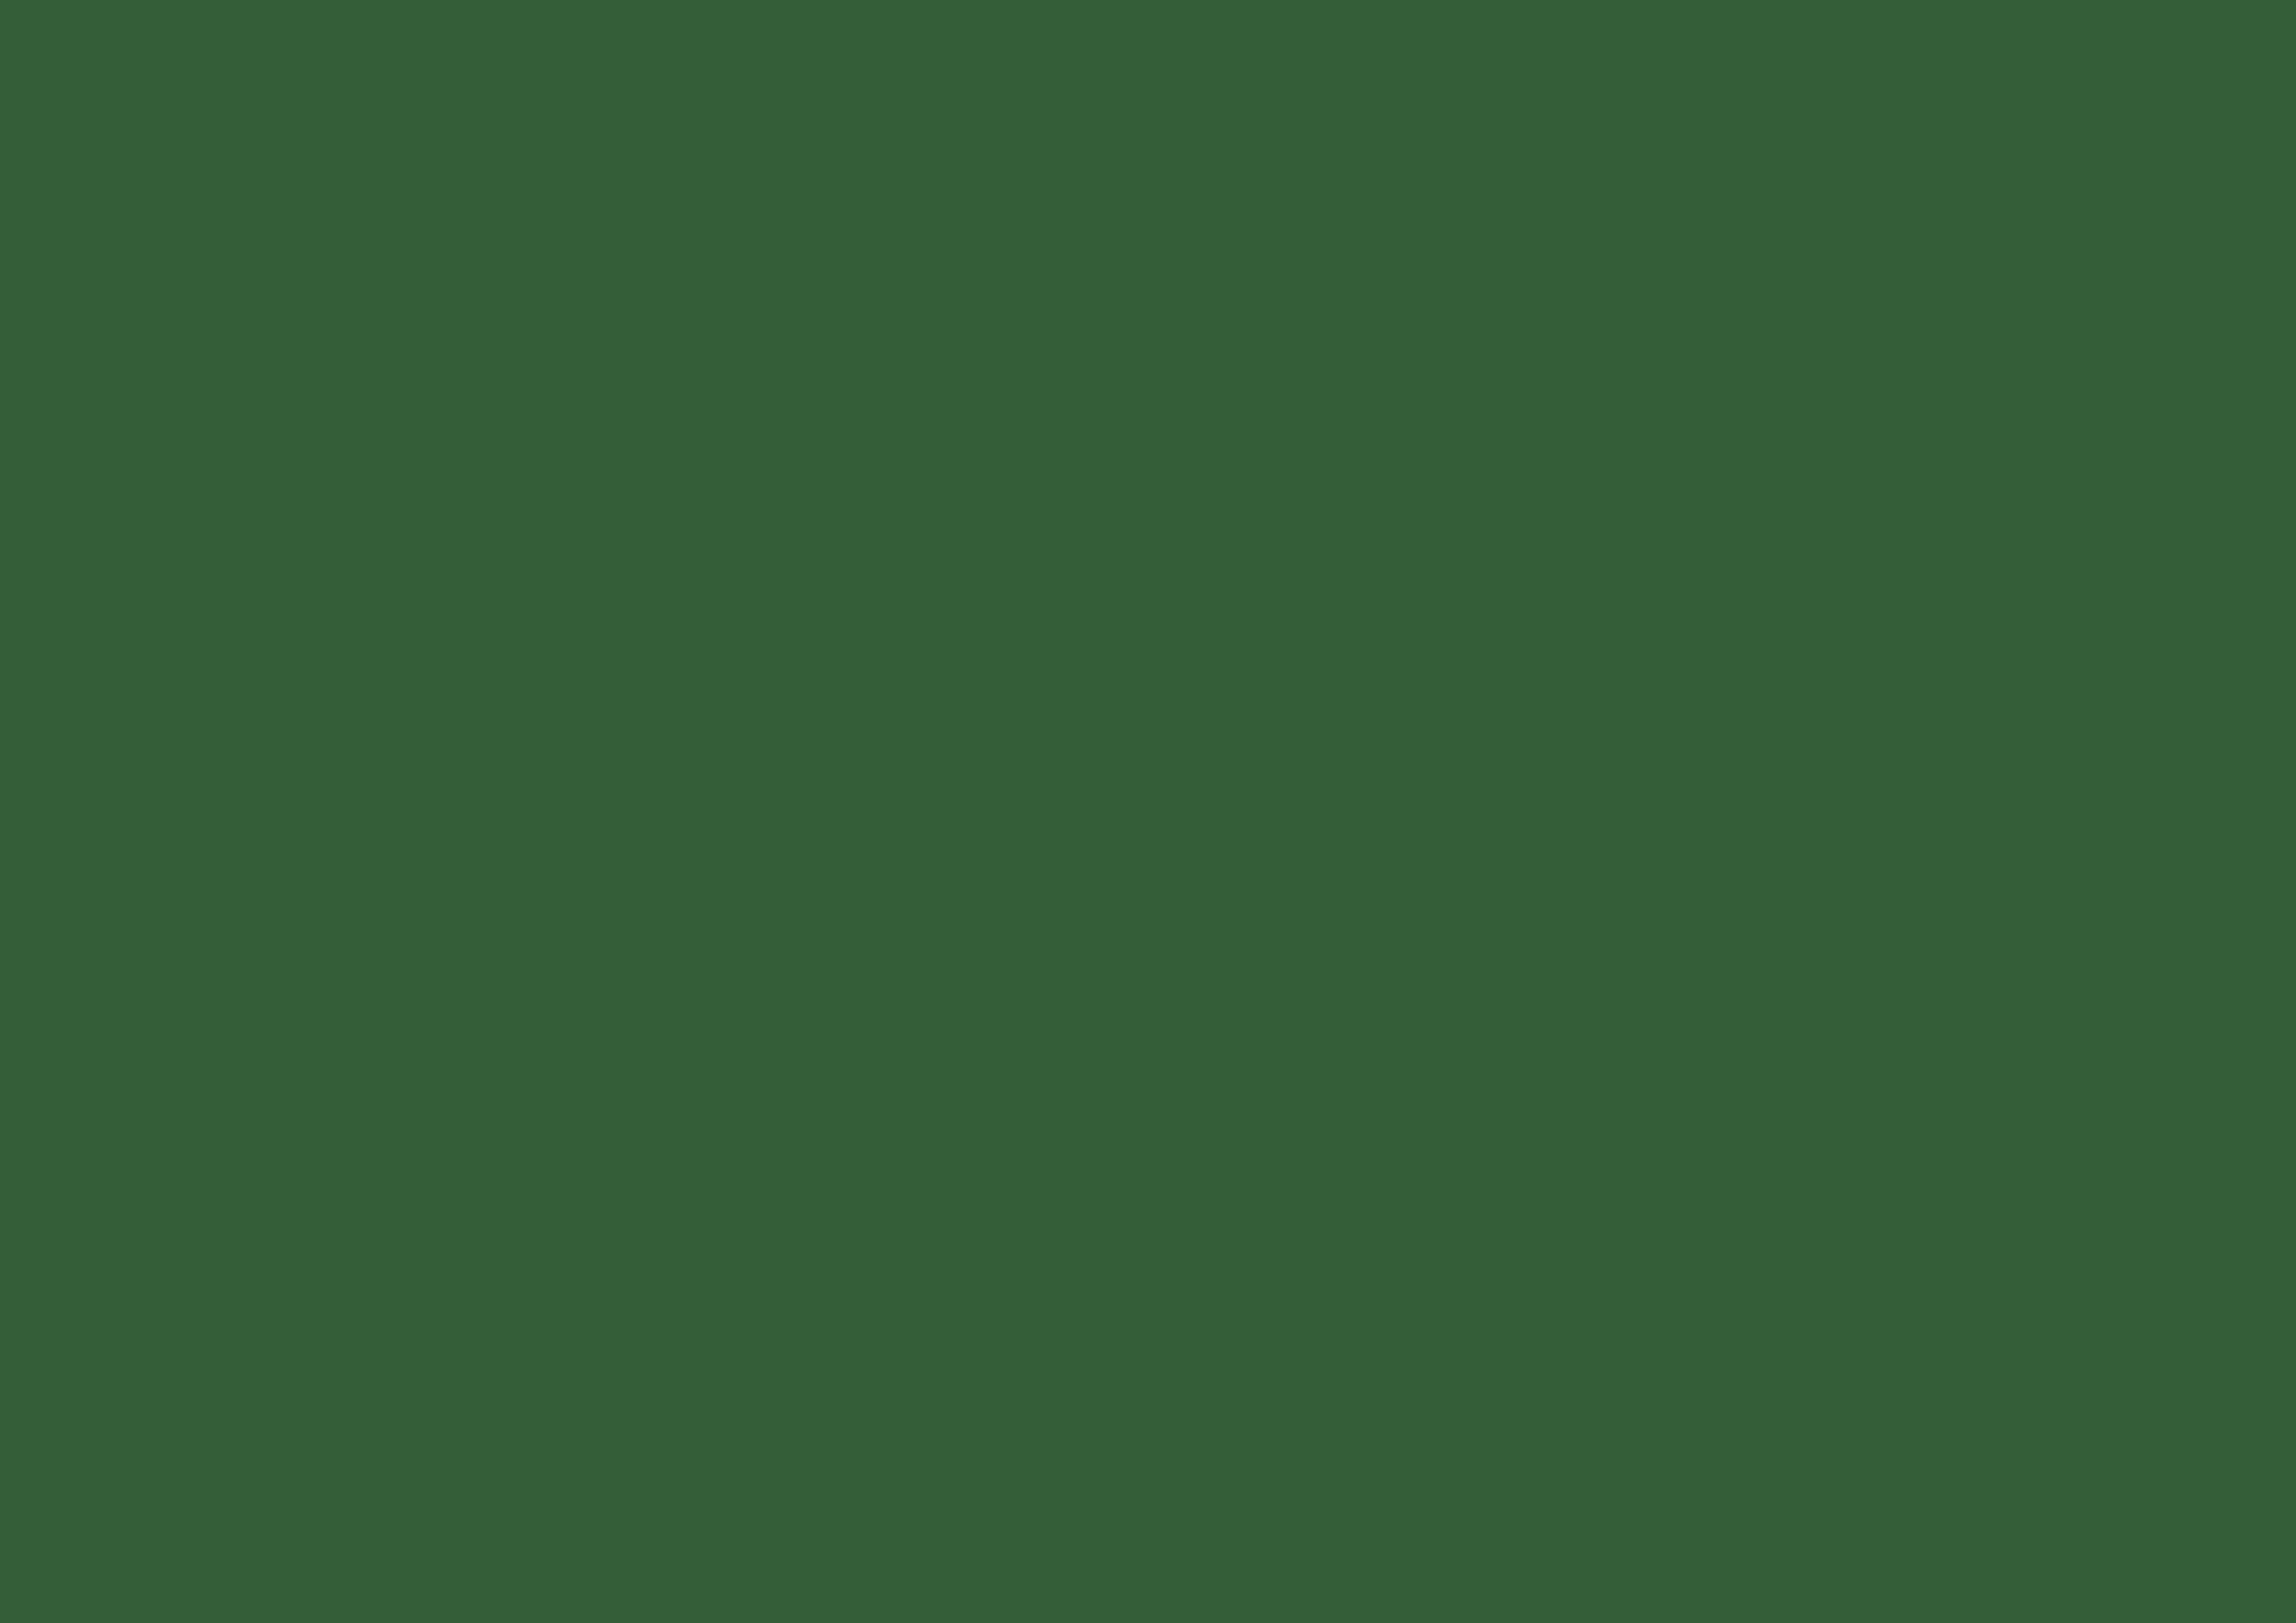 3508x2480 Deep Moss Green Solid Color Background